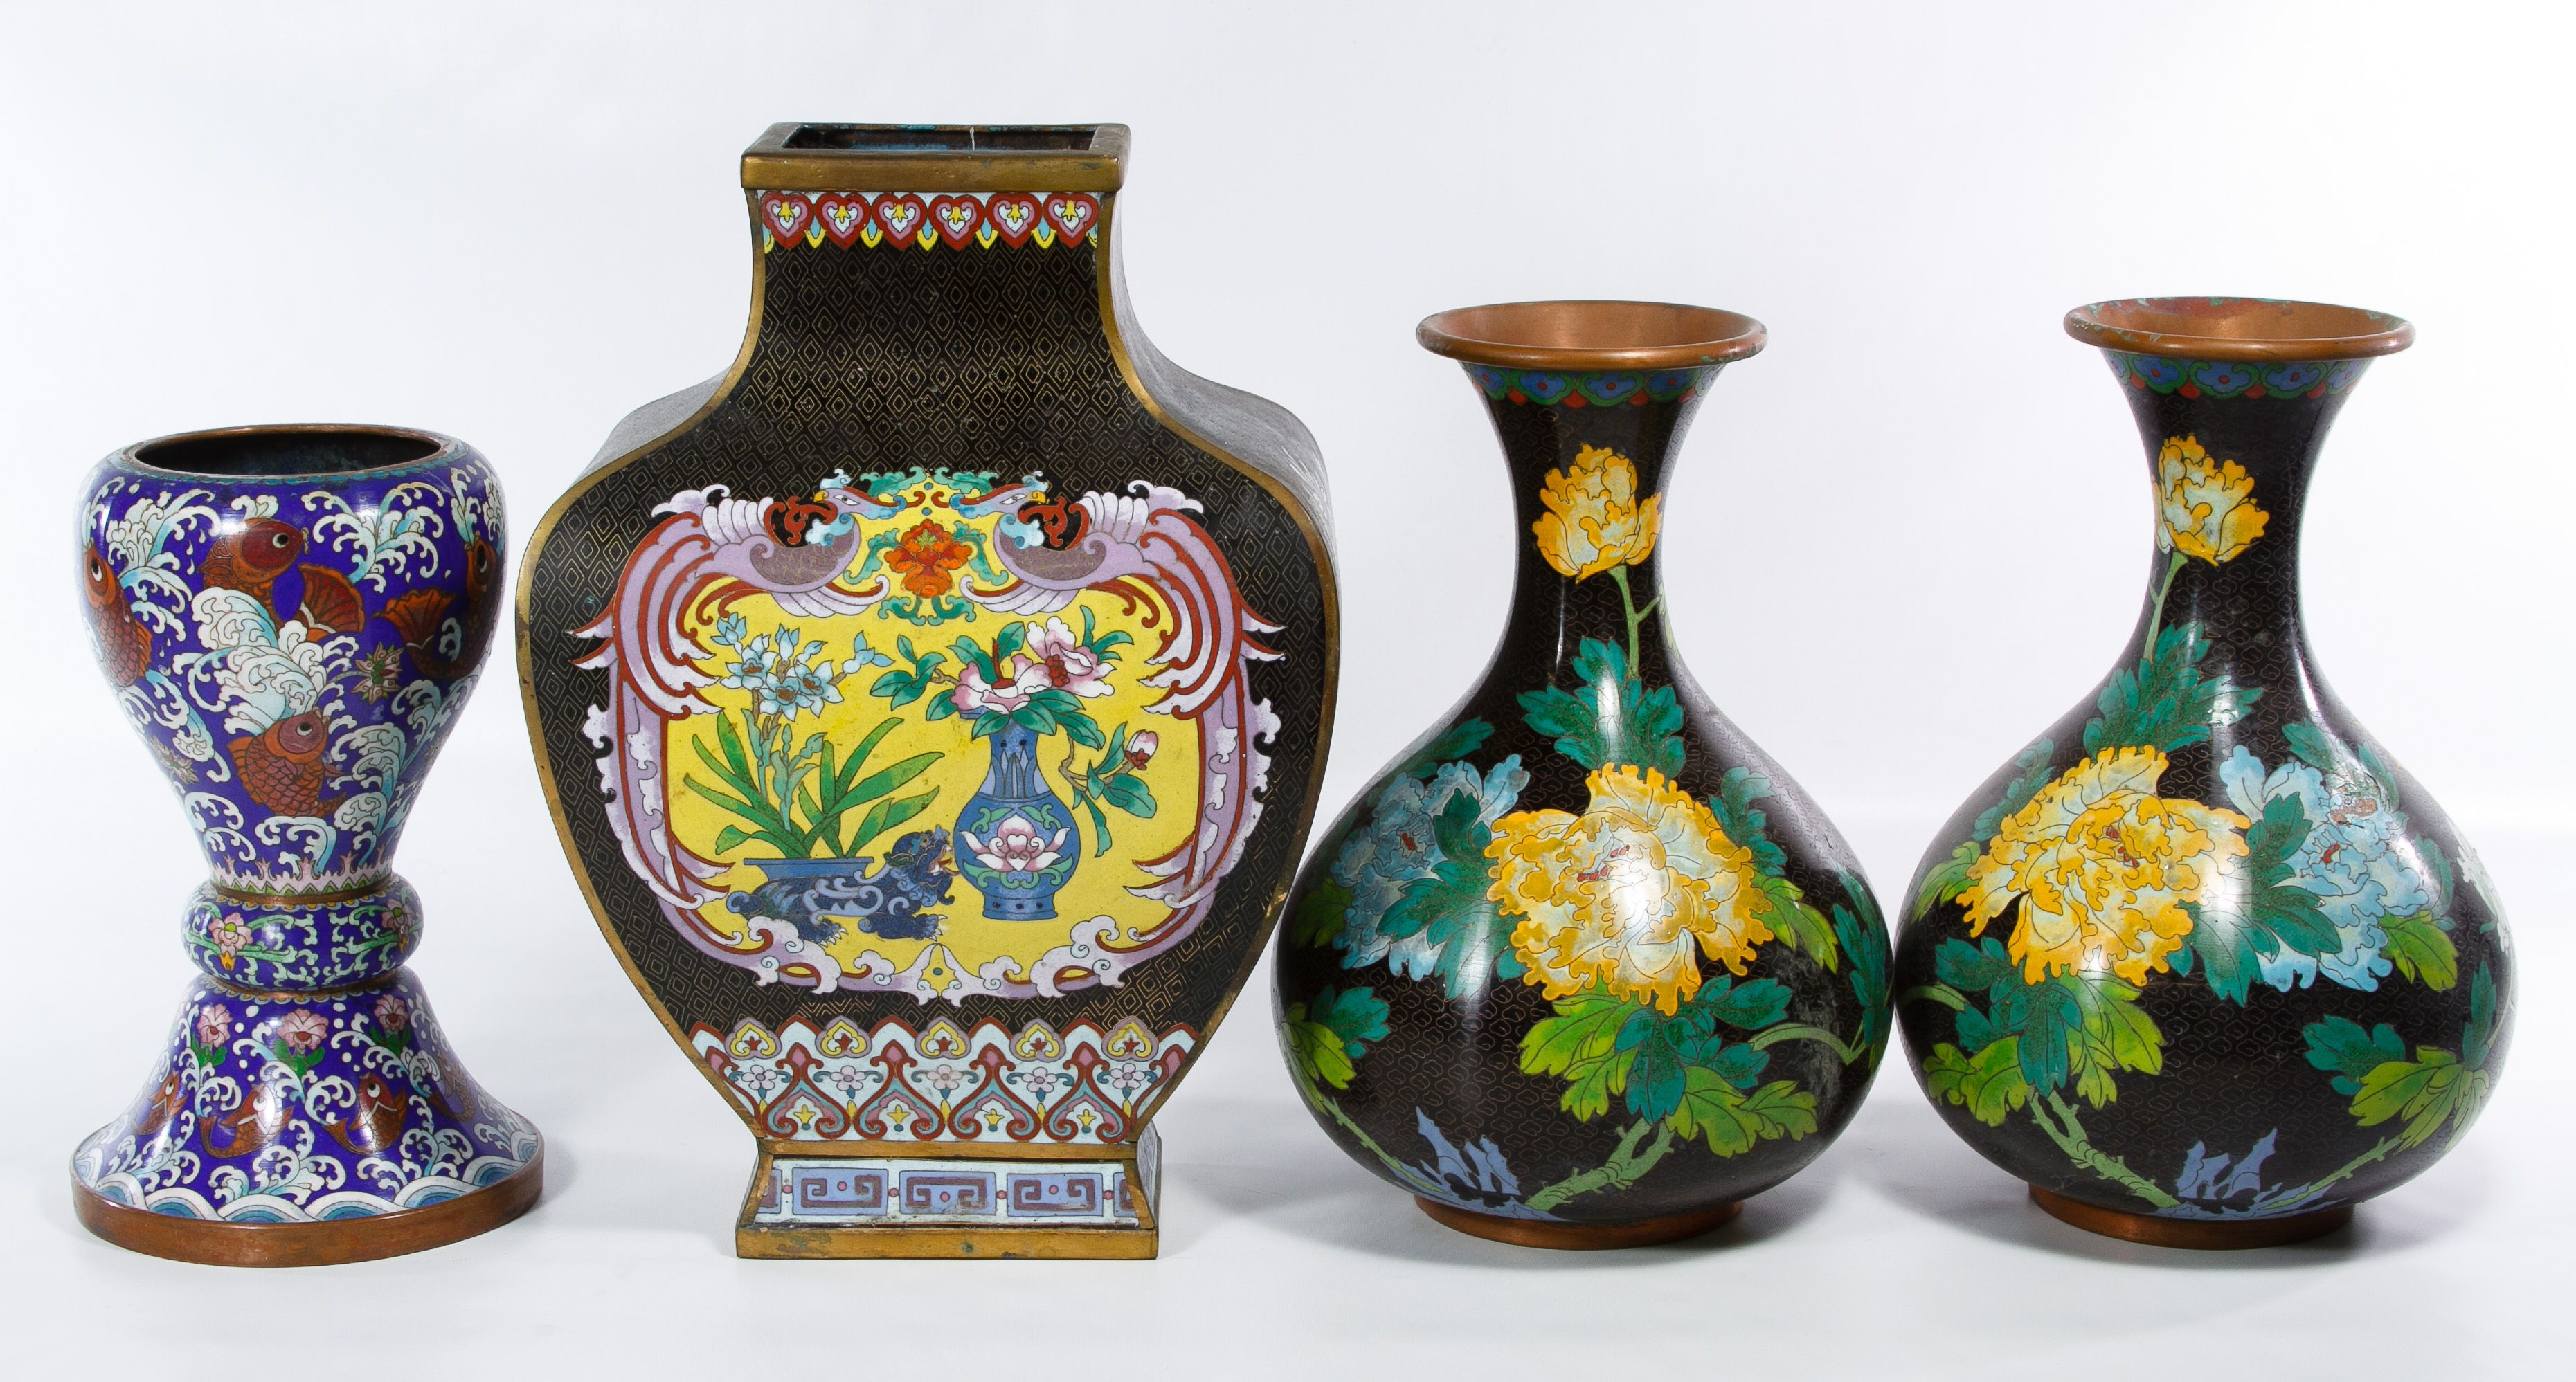 Lot 500 Asian Cloisonne Lidded Jars Having A Pair Of